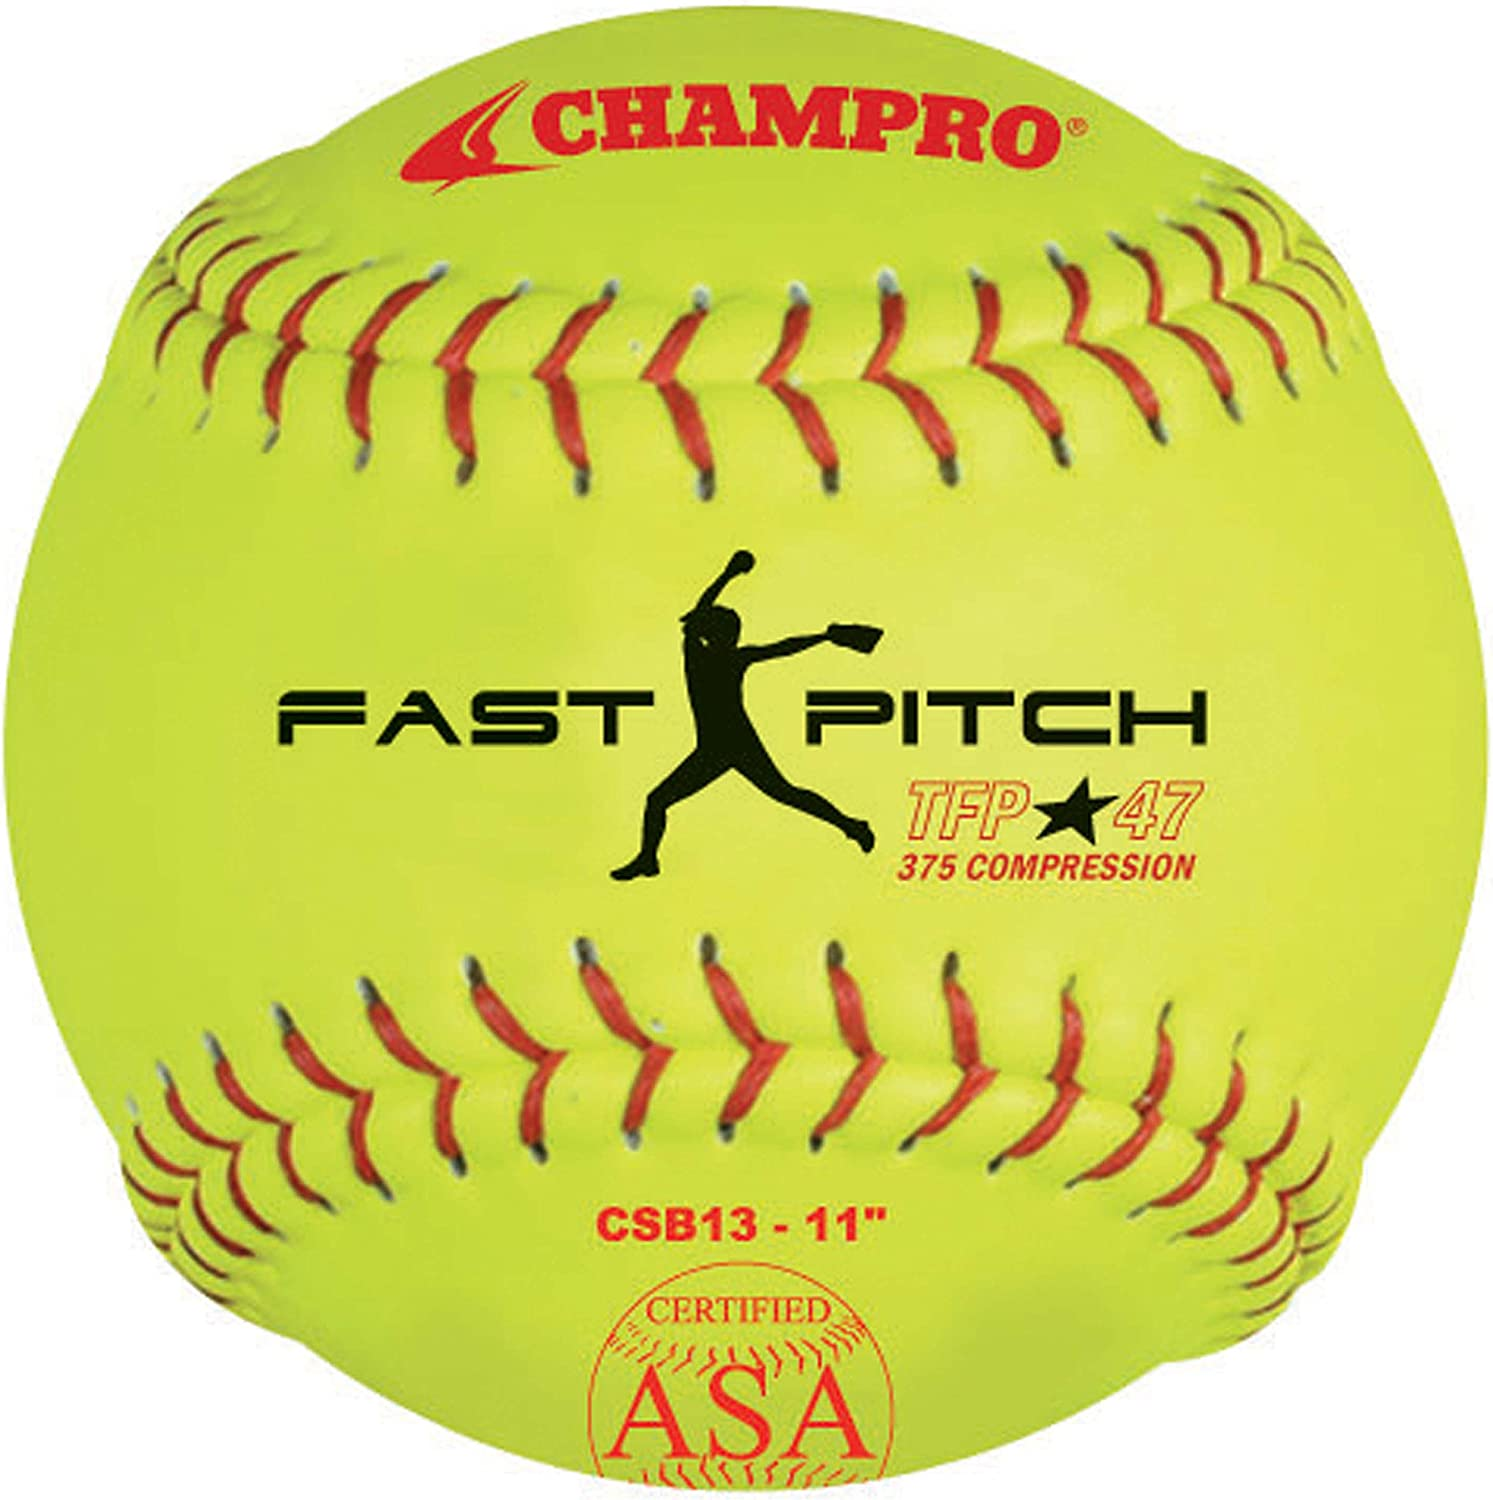 Champro ASA Tournament Leather Cover, Red Stiches (Optic Yellow, 11Inch)